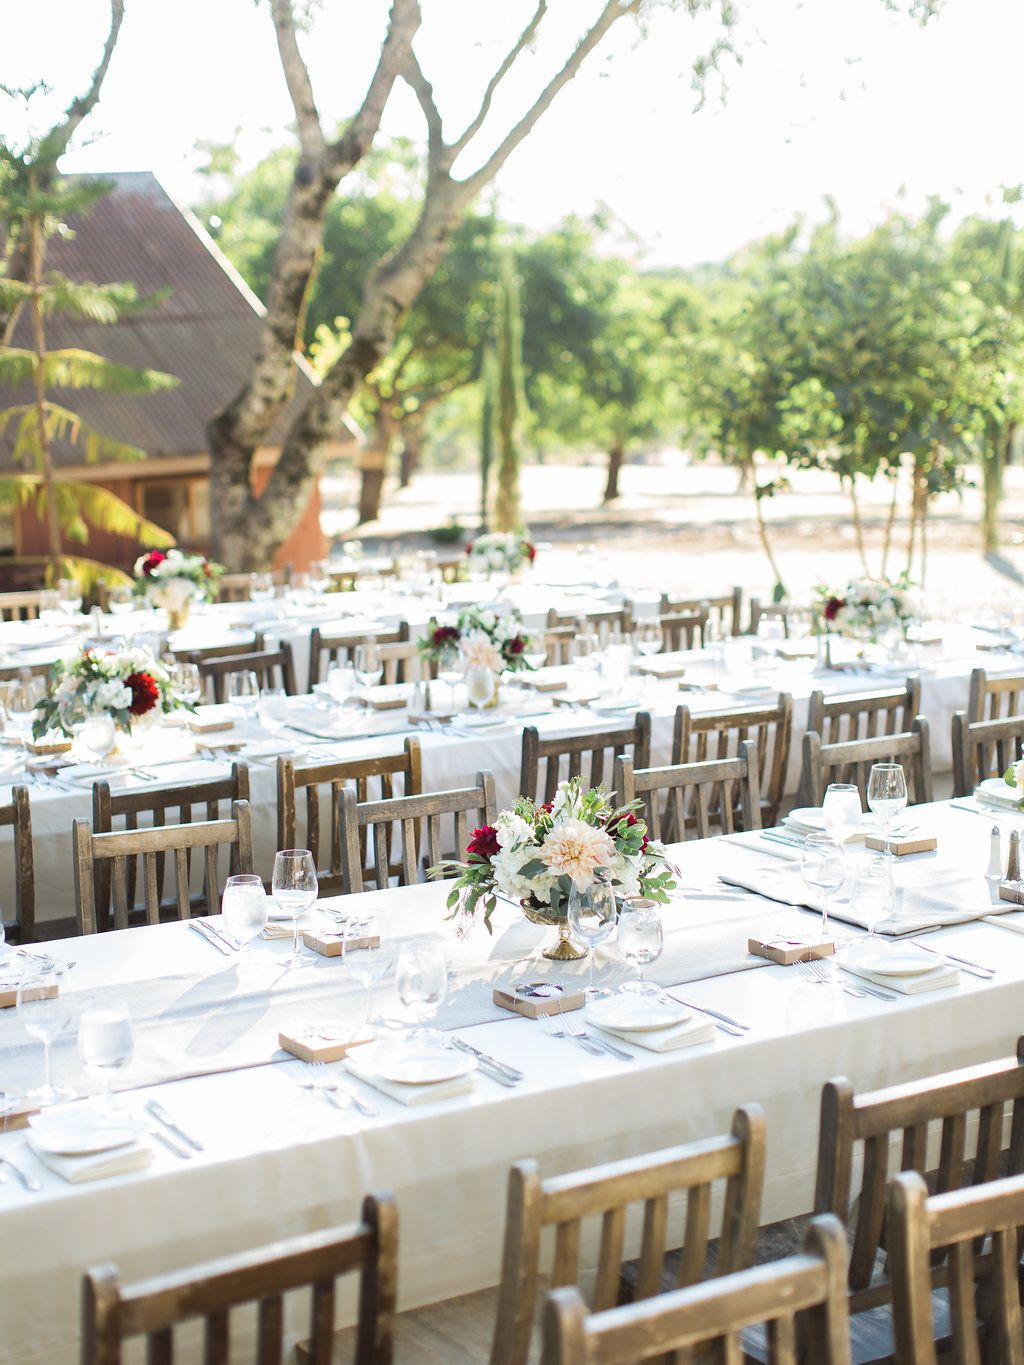 Triple S Ranch Dining outside for wedding in 2020